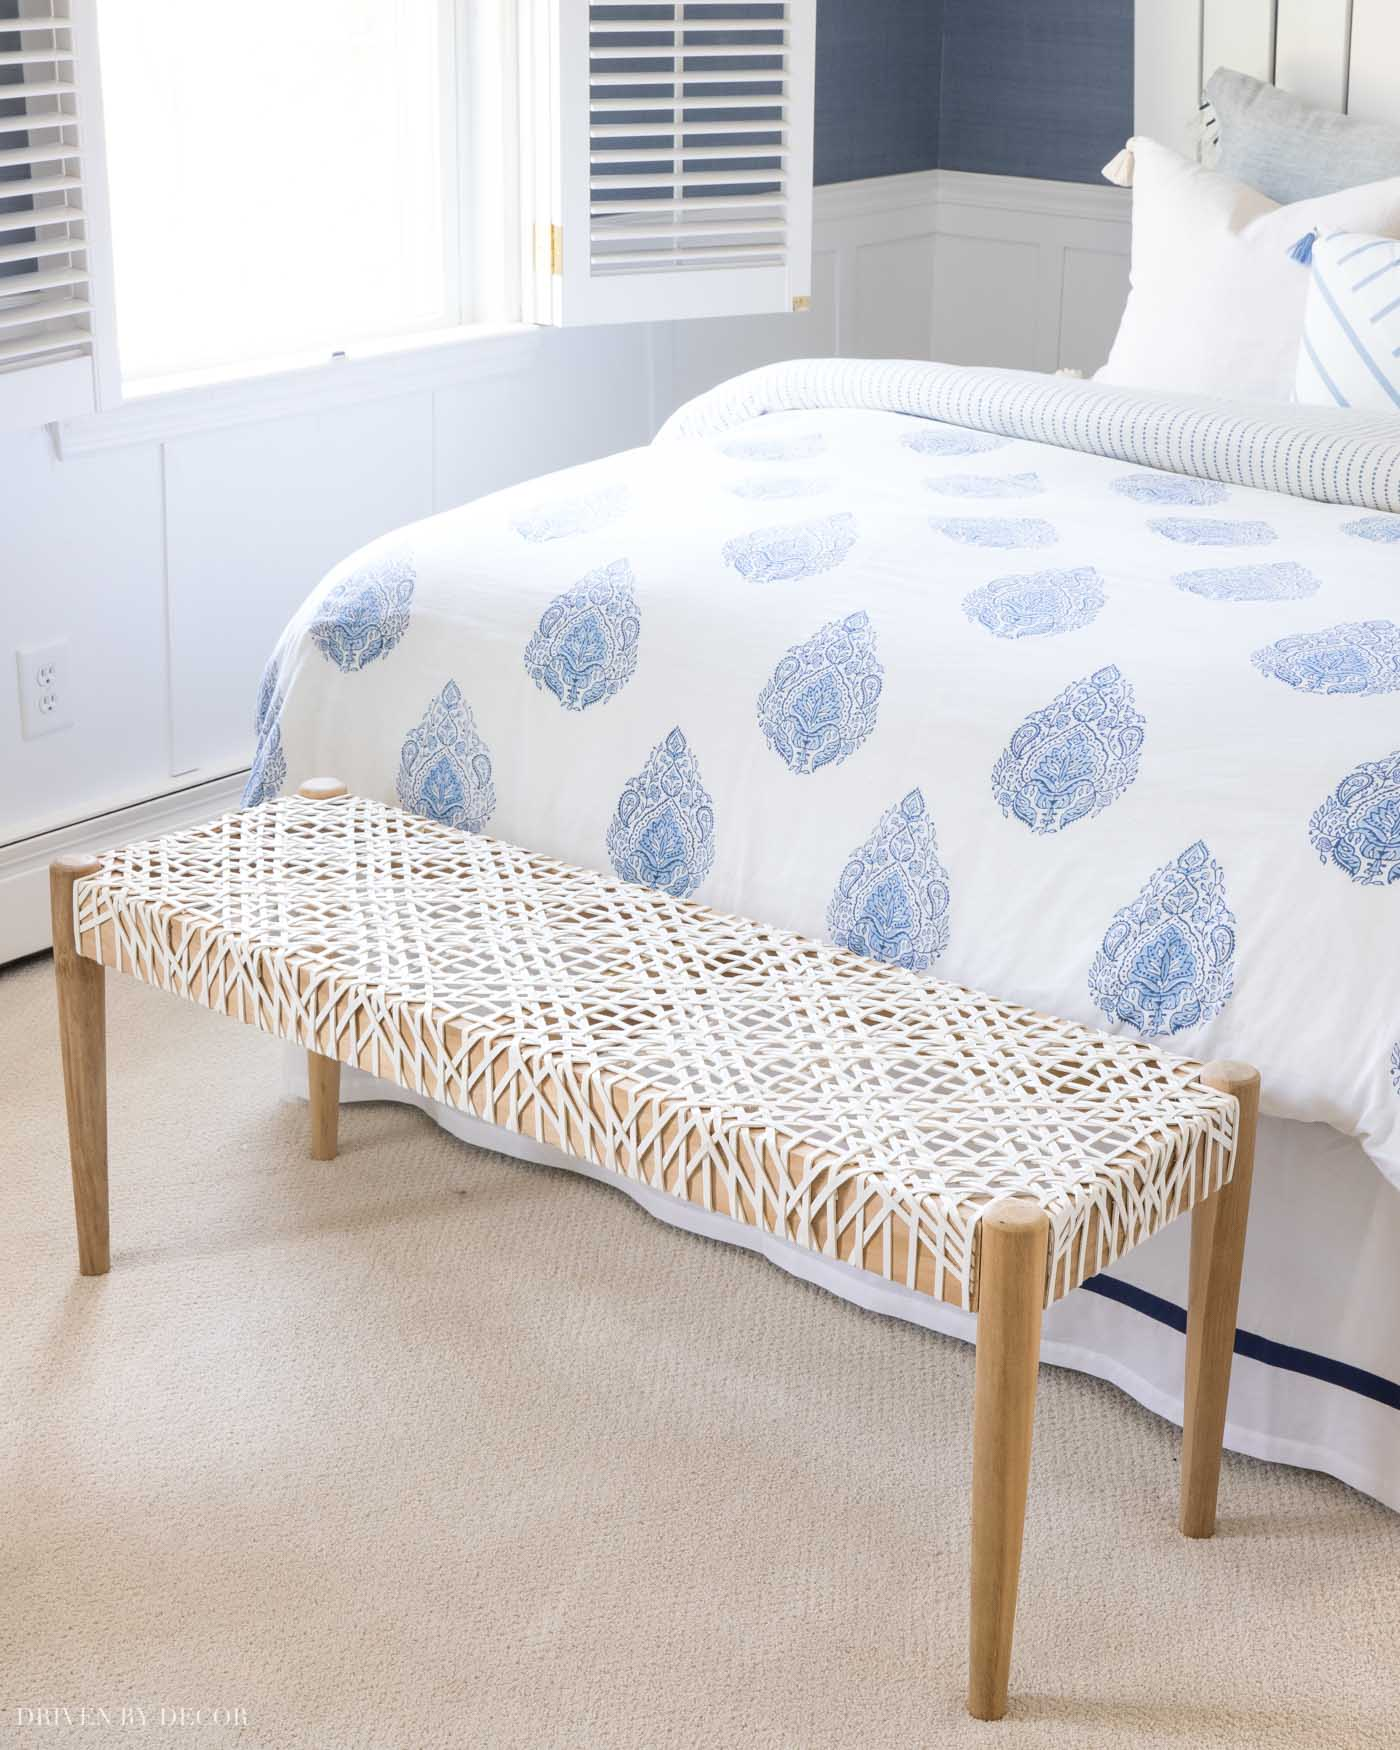 Such a pretty bench that works great at the foot of a bed!